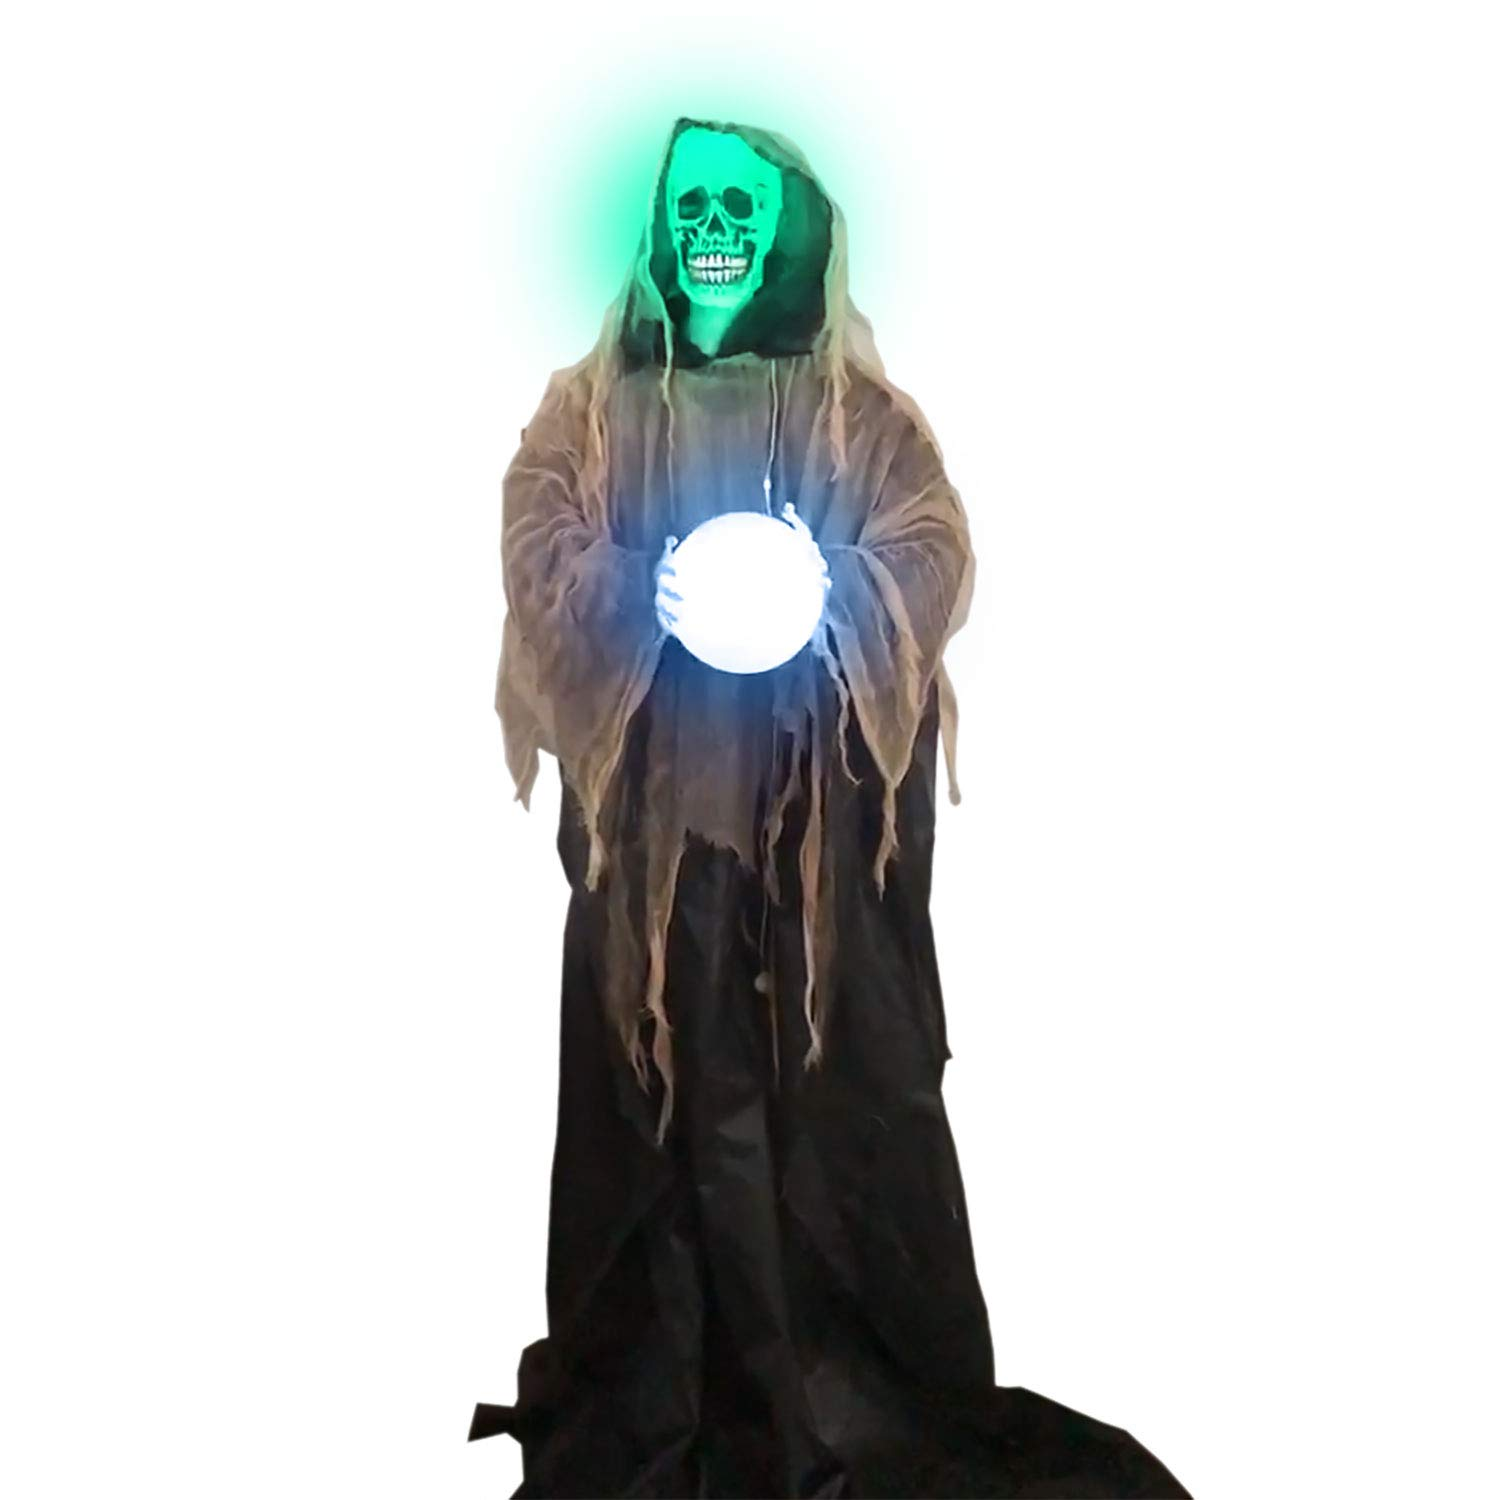 Halloween Haunters Animated Standing 6 Foot Sonic Strobe Skull Reaper with Magic Crystal Ball Prop Decoration - Strobing Green Light Skeleton Head, Flashing Light Up Crystal Ball - Battery Operated